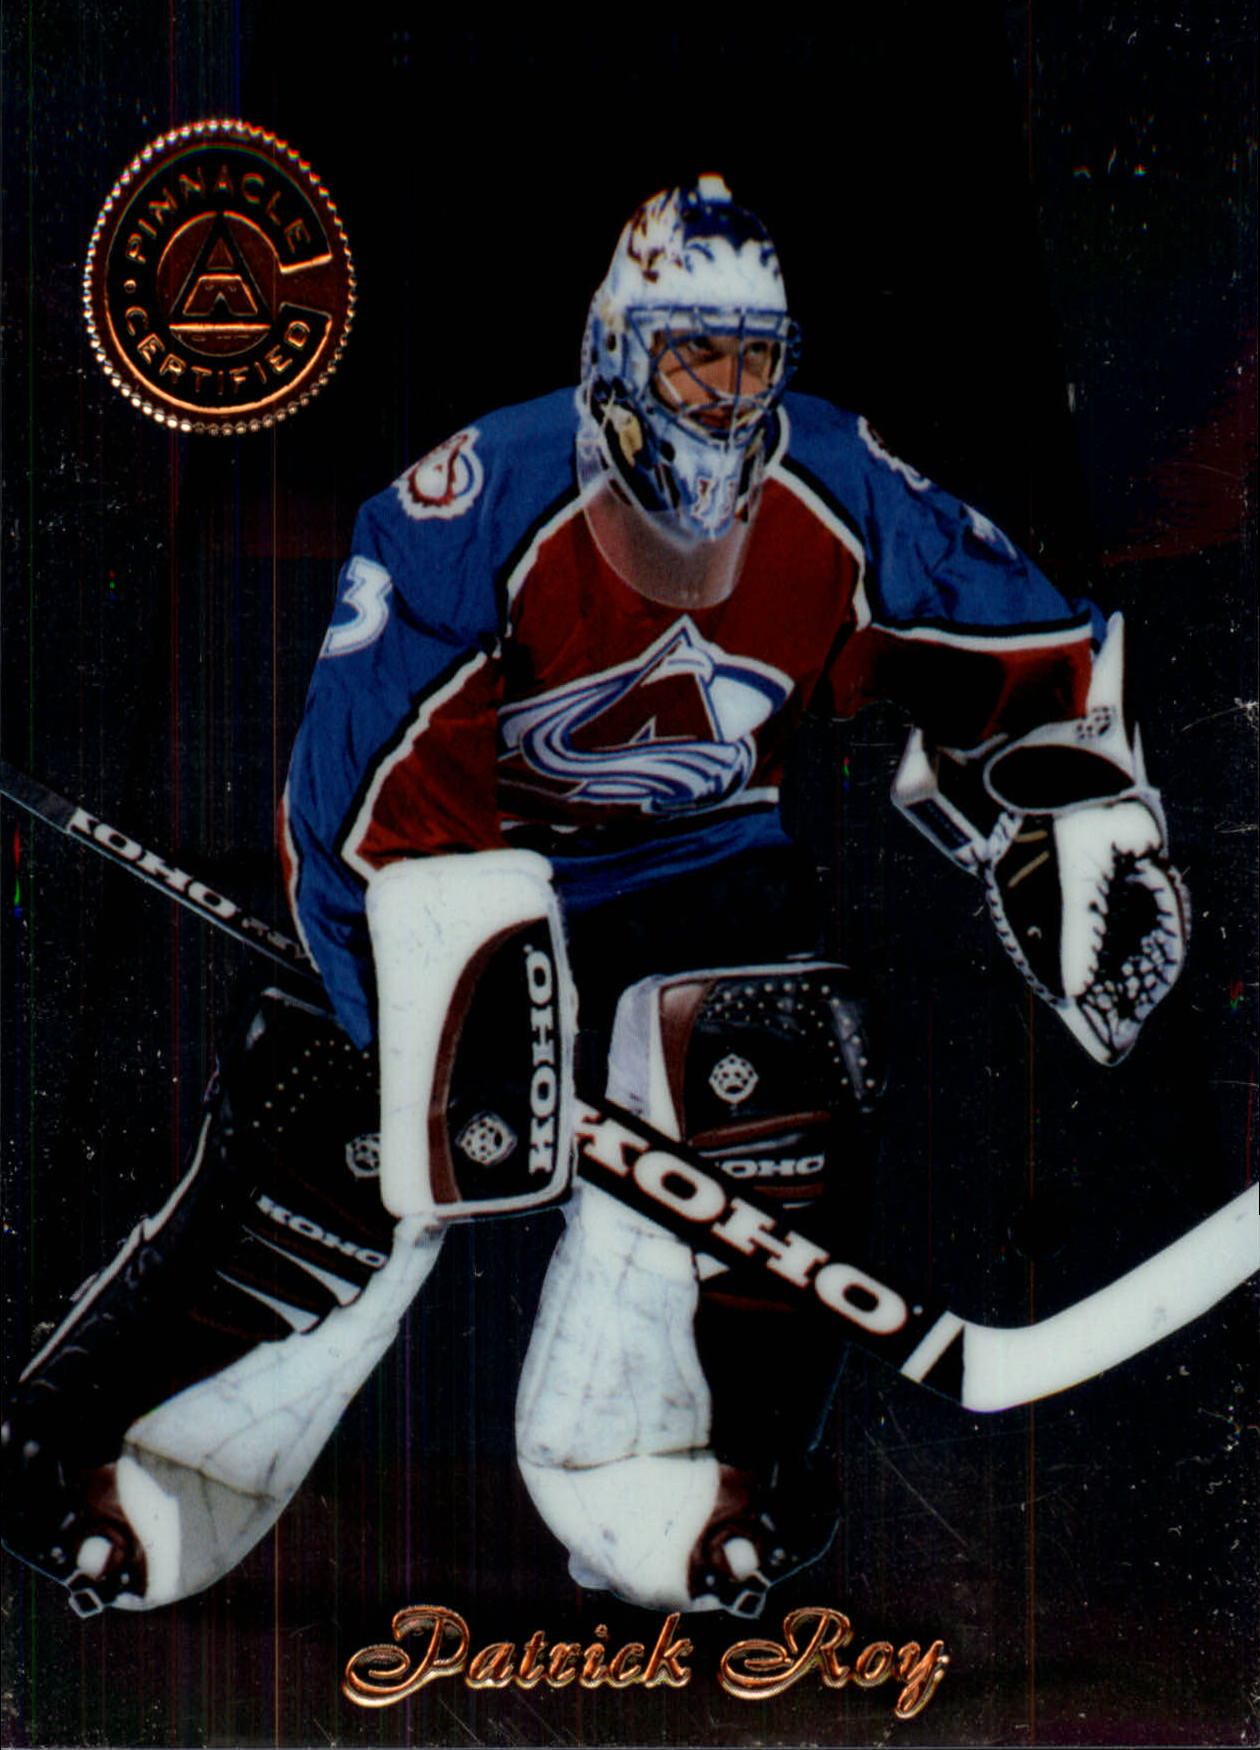 1997-98 Pinnacle Certified #2 Patrick Roy